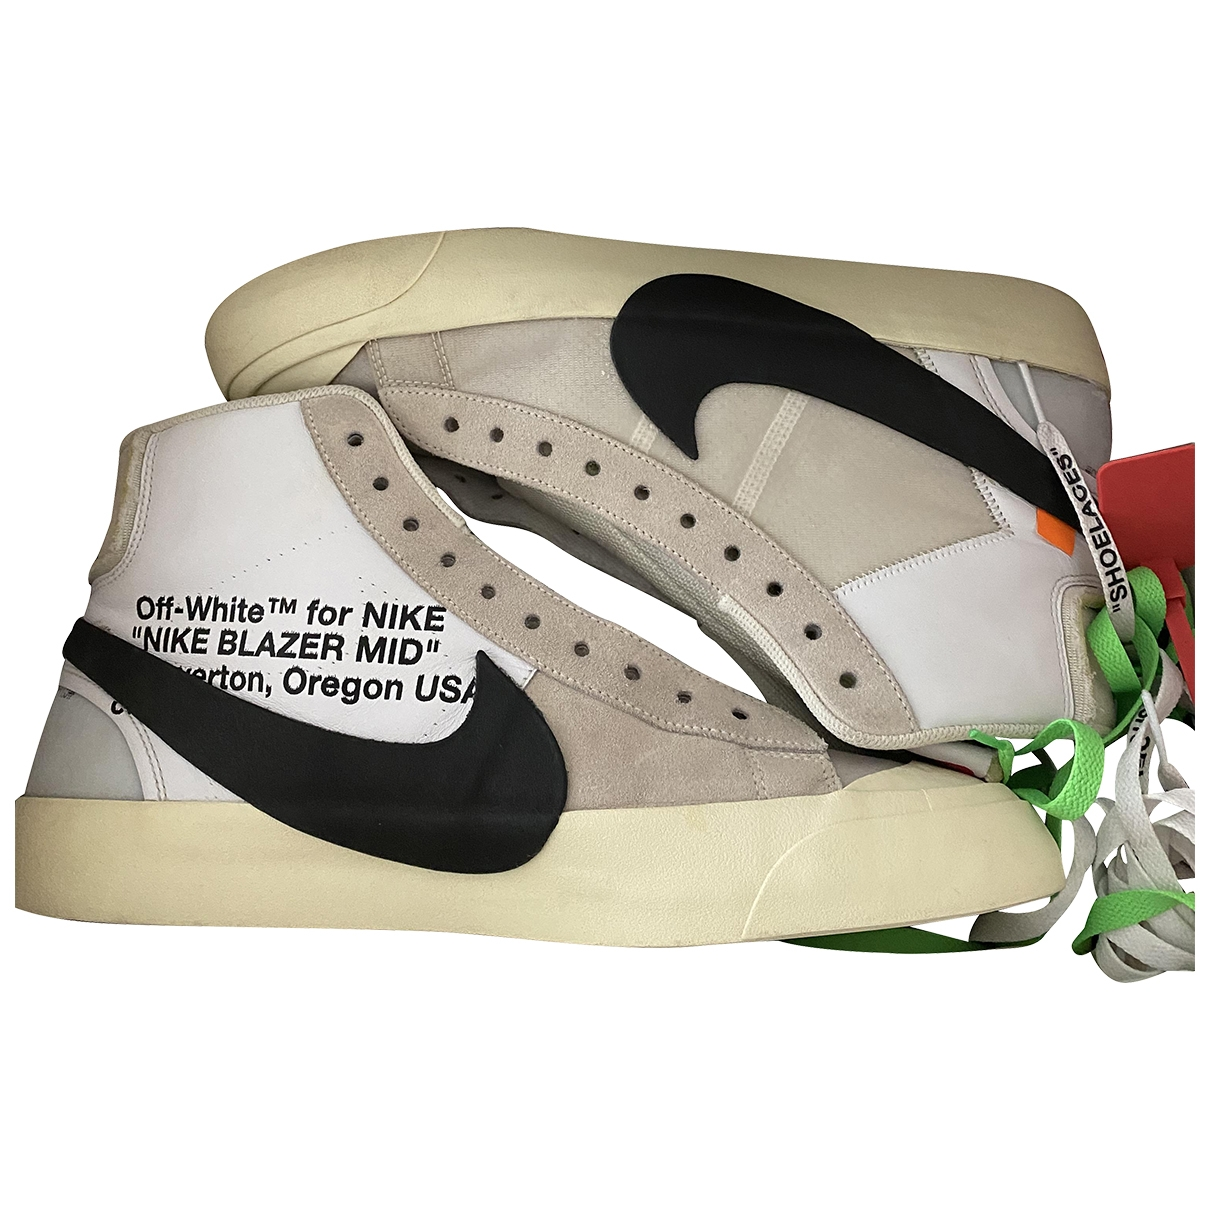 Nike X Off-white Blazer Mid White Leather Trainers for Men 11 US